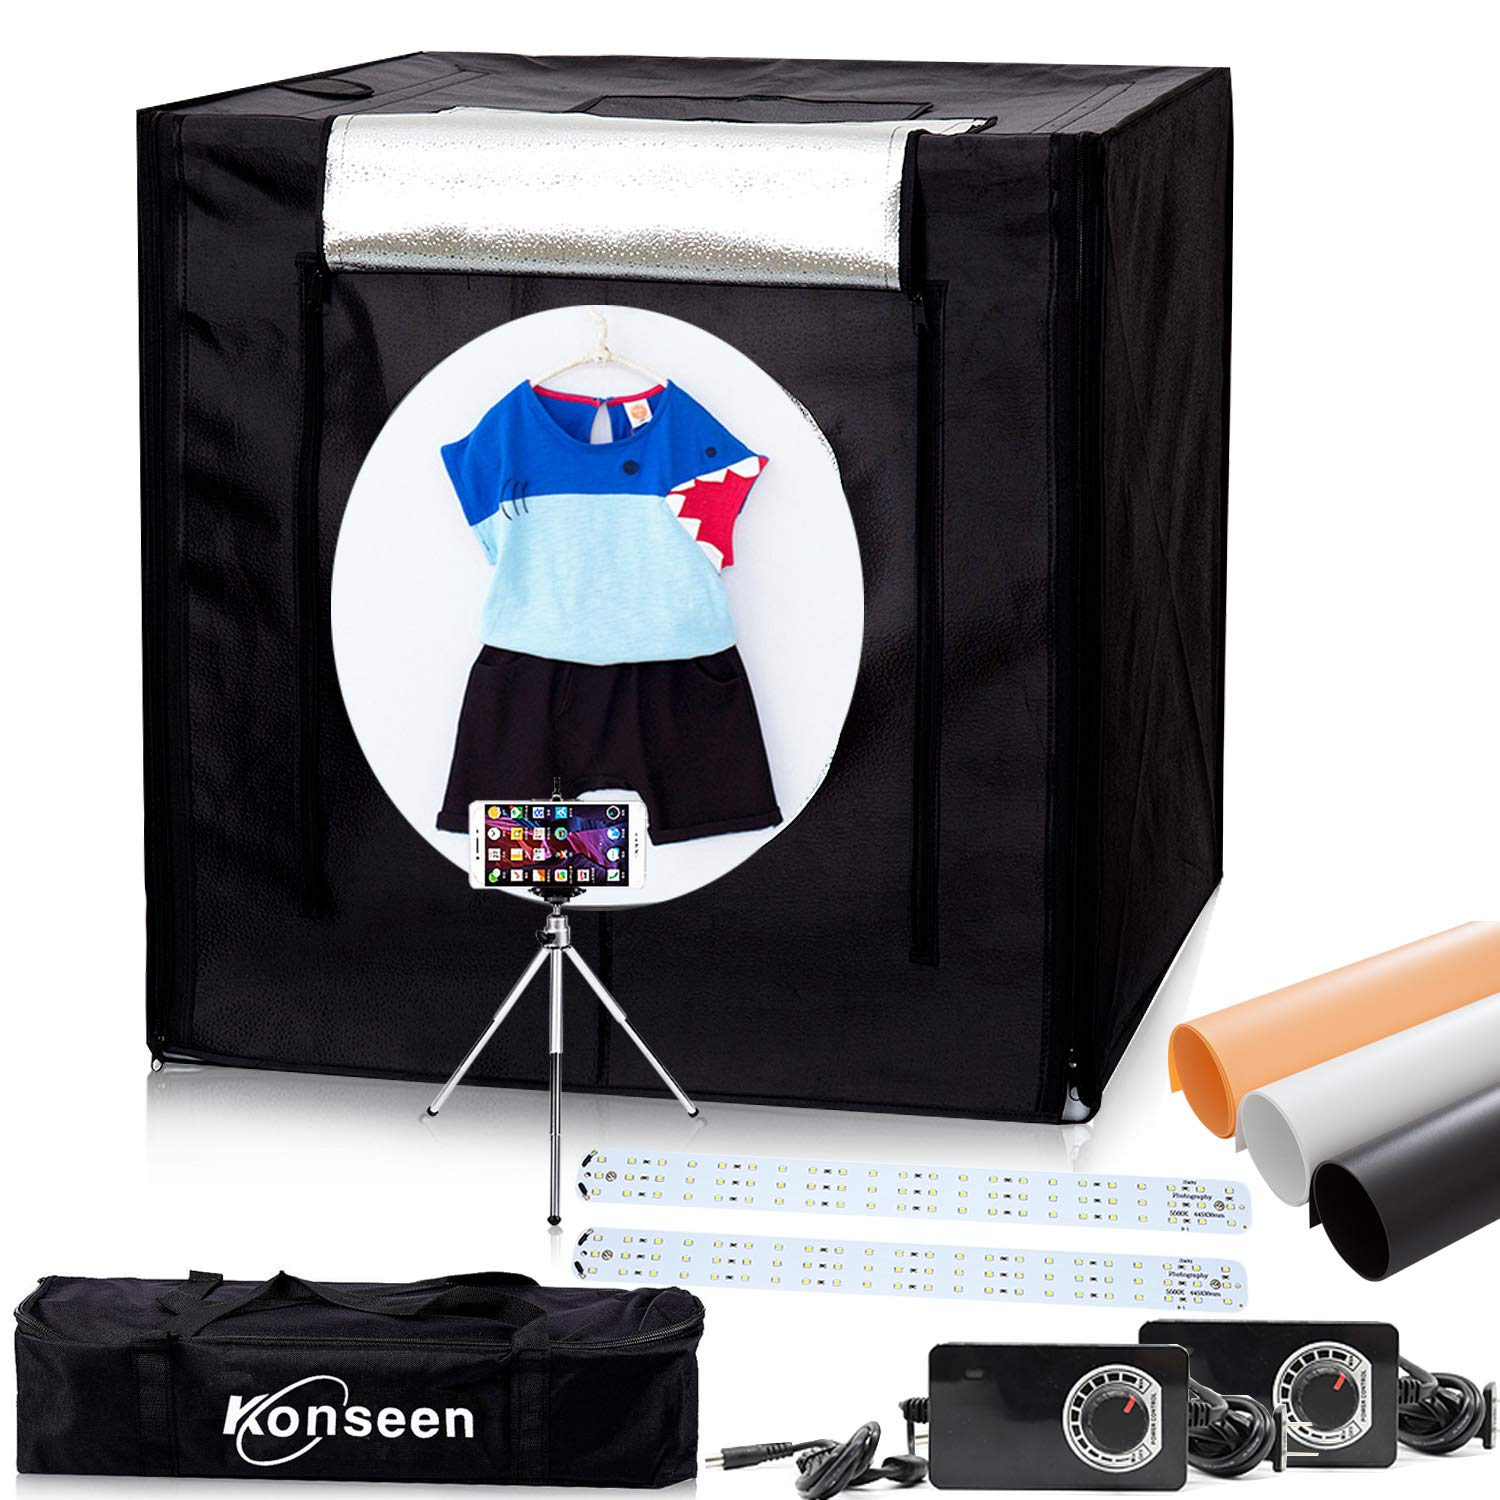 Dimmable Large Photo Studio Light Tent 32'x32'x32' 5500K Led Cube Light box Photography Lighting Shoot Tent Softbox with Mini Tripod and 3 Colors PVC Backdrops in Carry Bag Konseen MS80-F-T